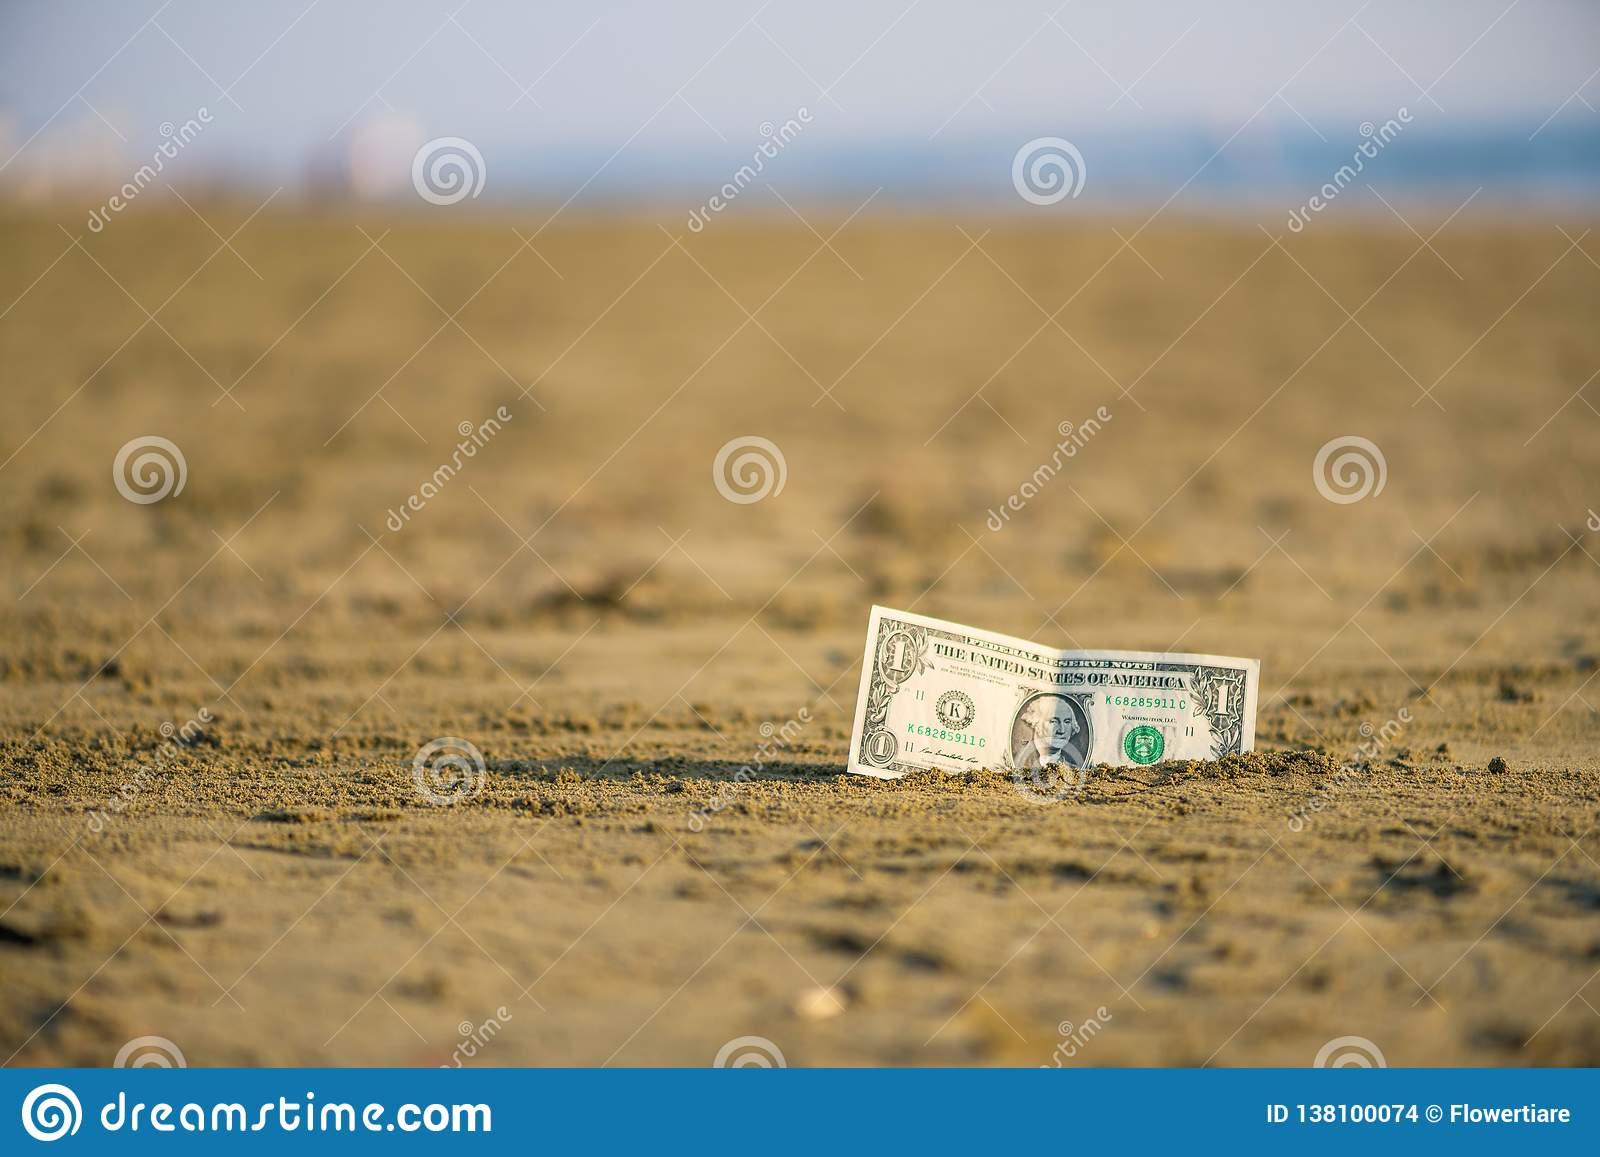 Banknote Of Value Of One Dollar In The The Sand On The Beach